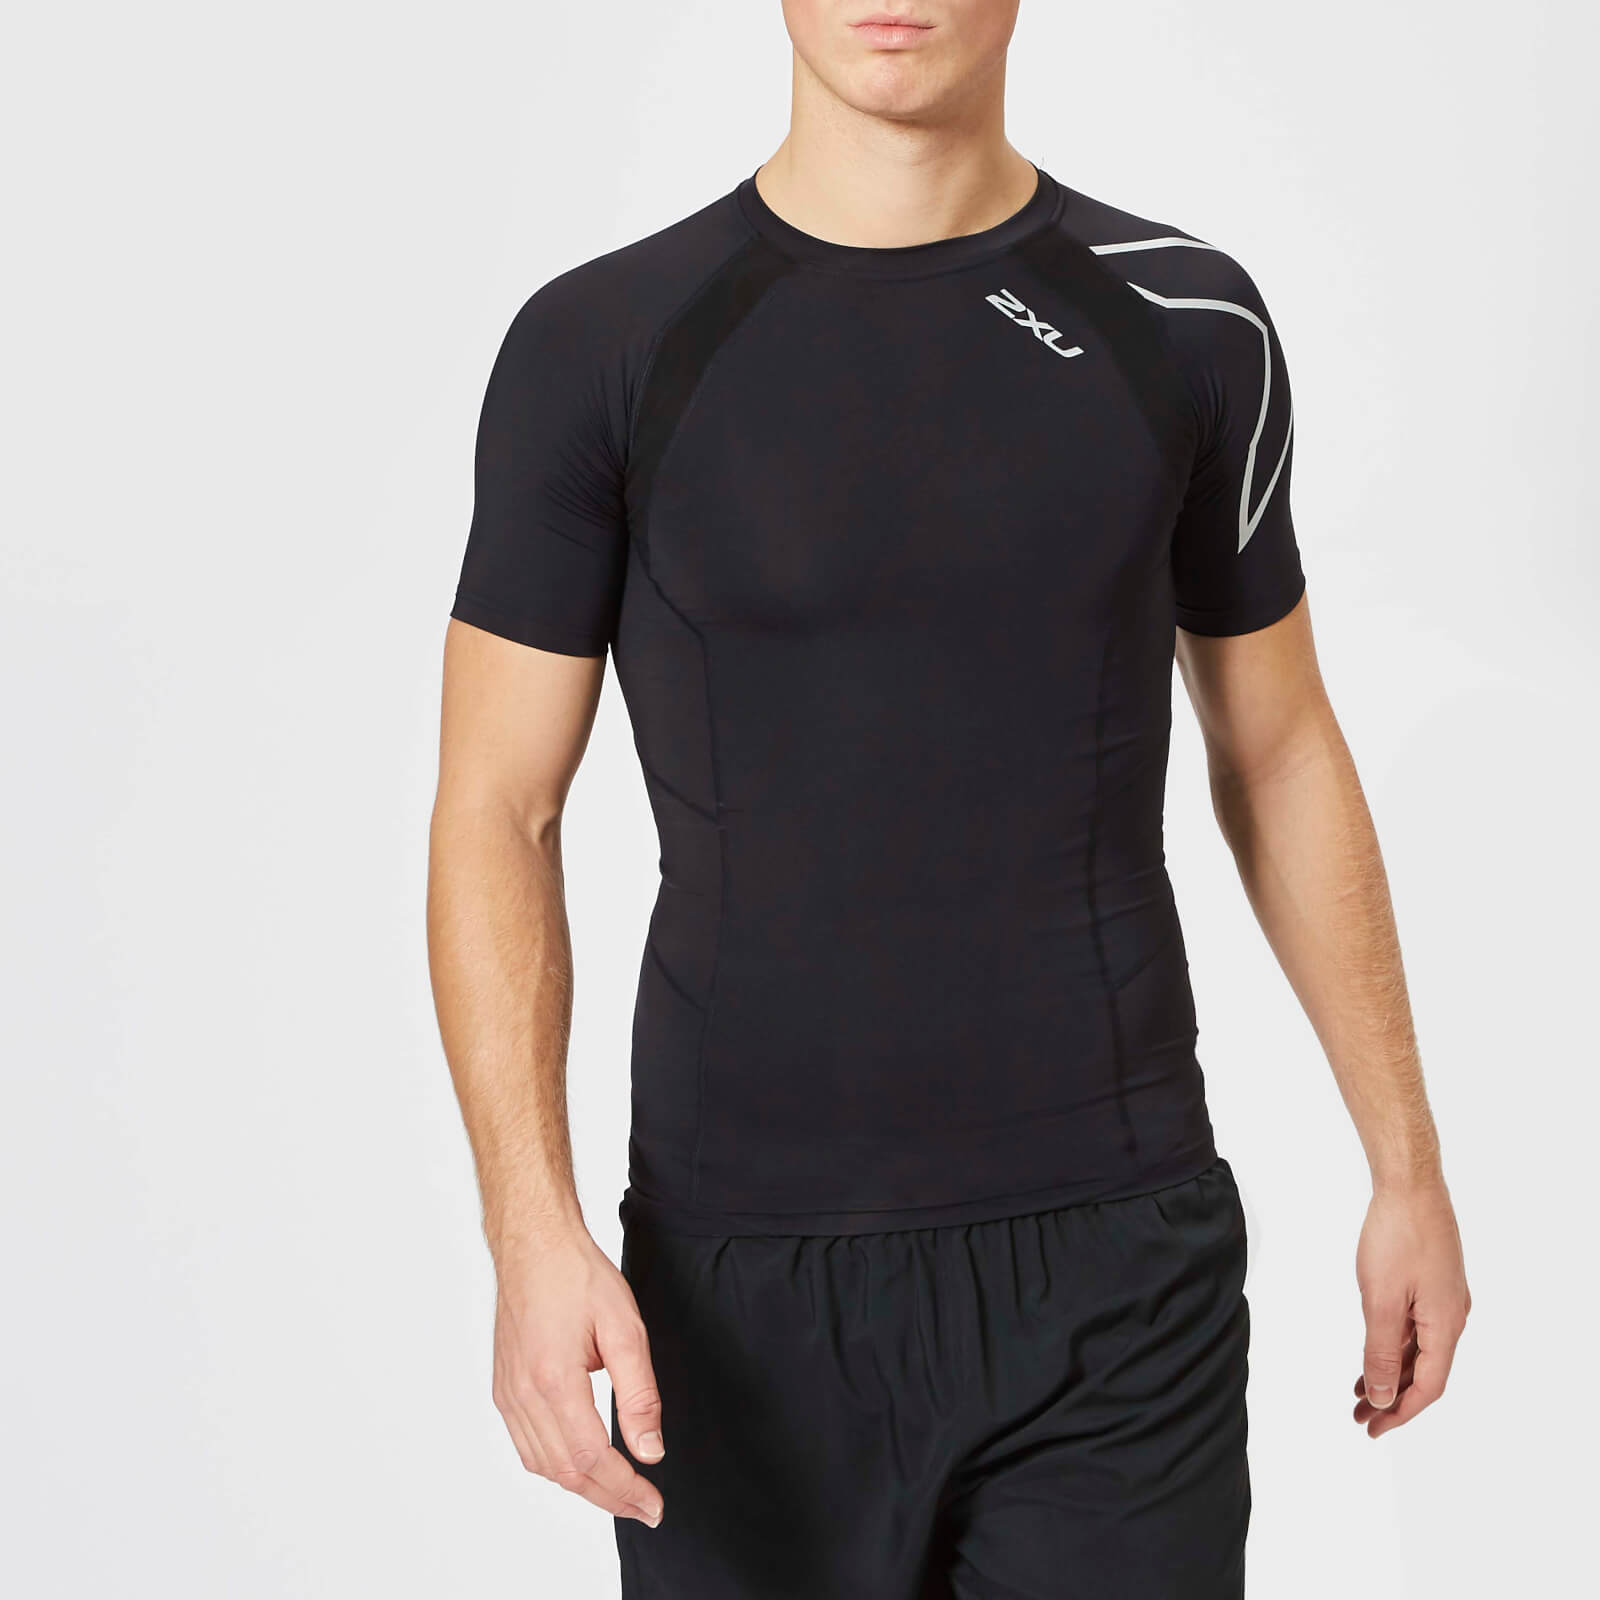 eac74b9659 2XU Men's Compression Short Sleeve Top - Black - Free UK Delivery over £50